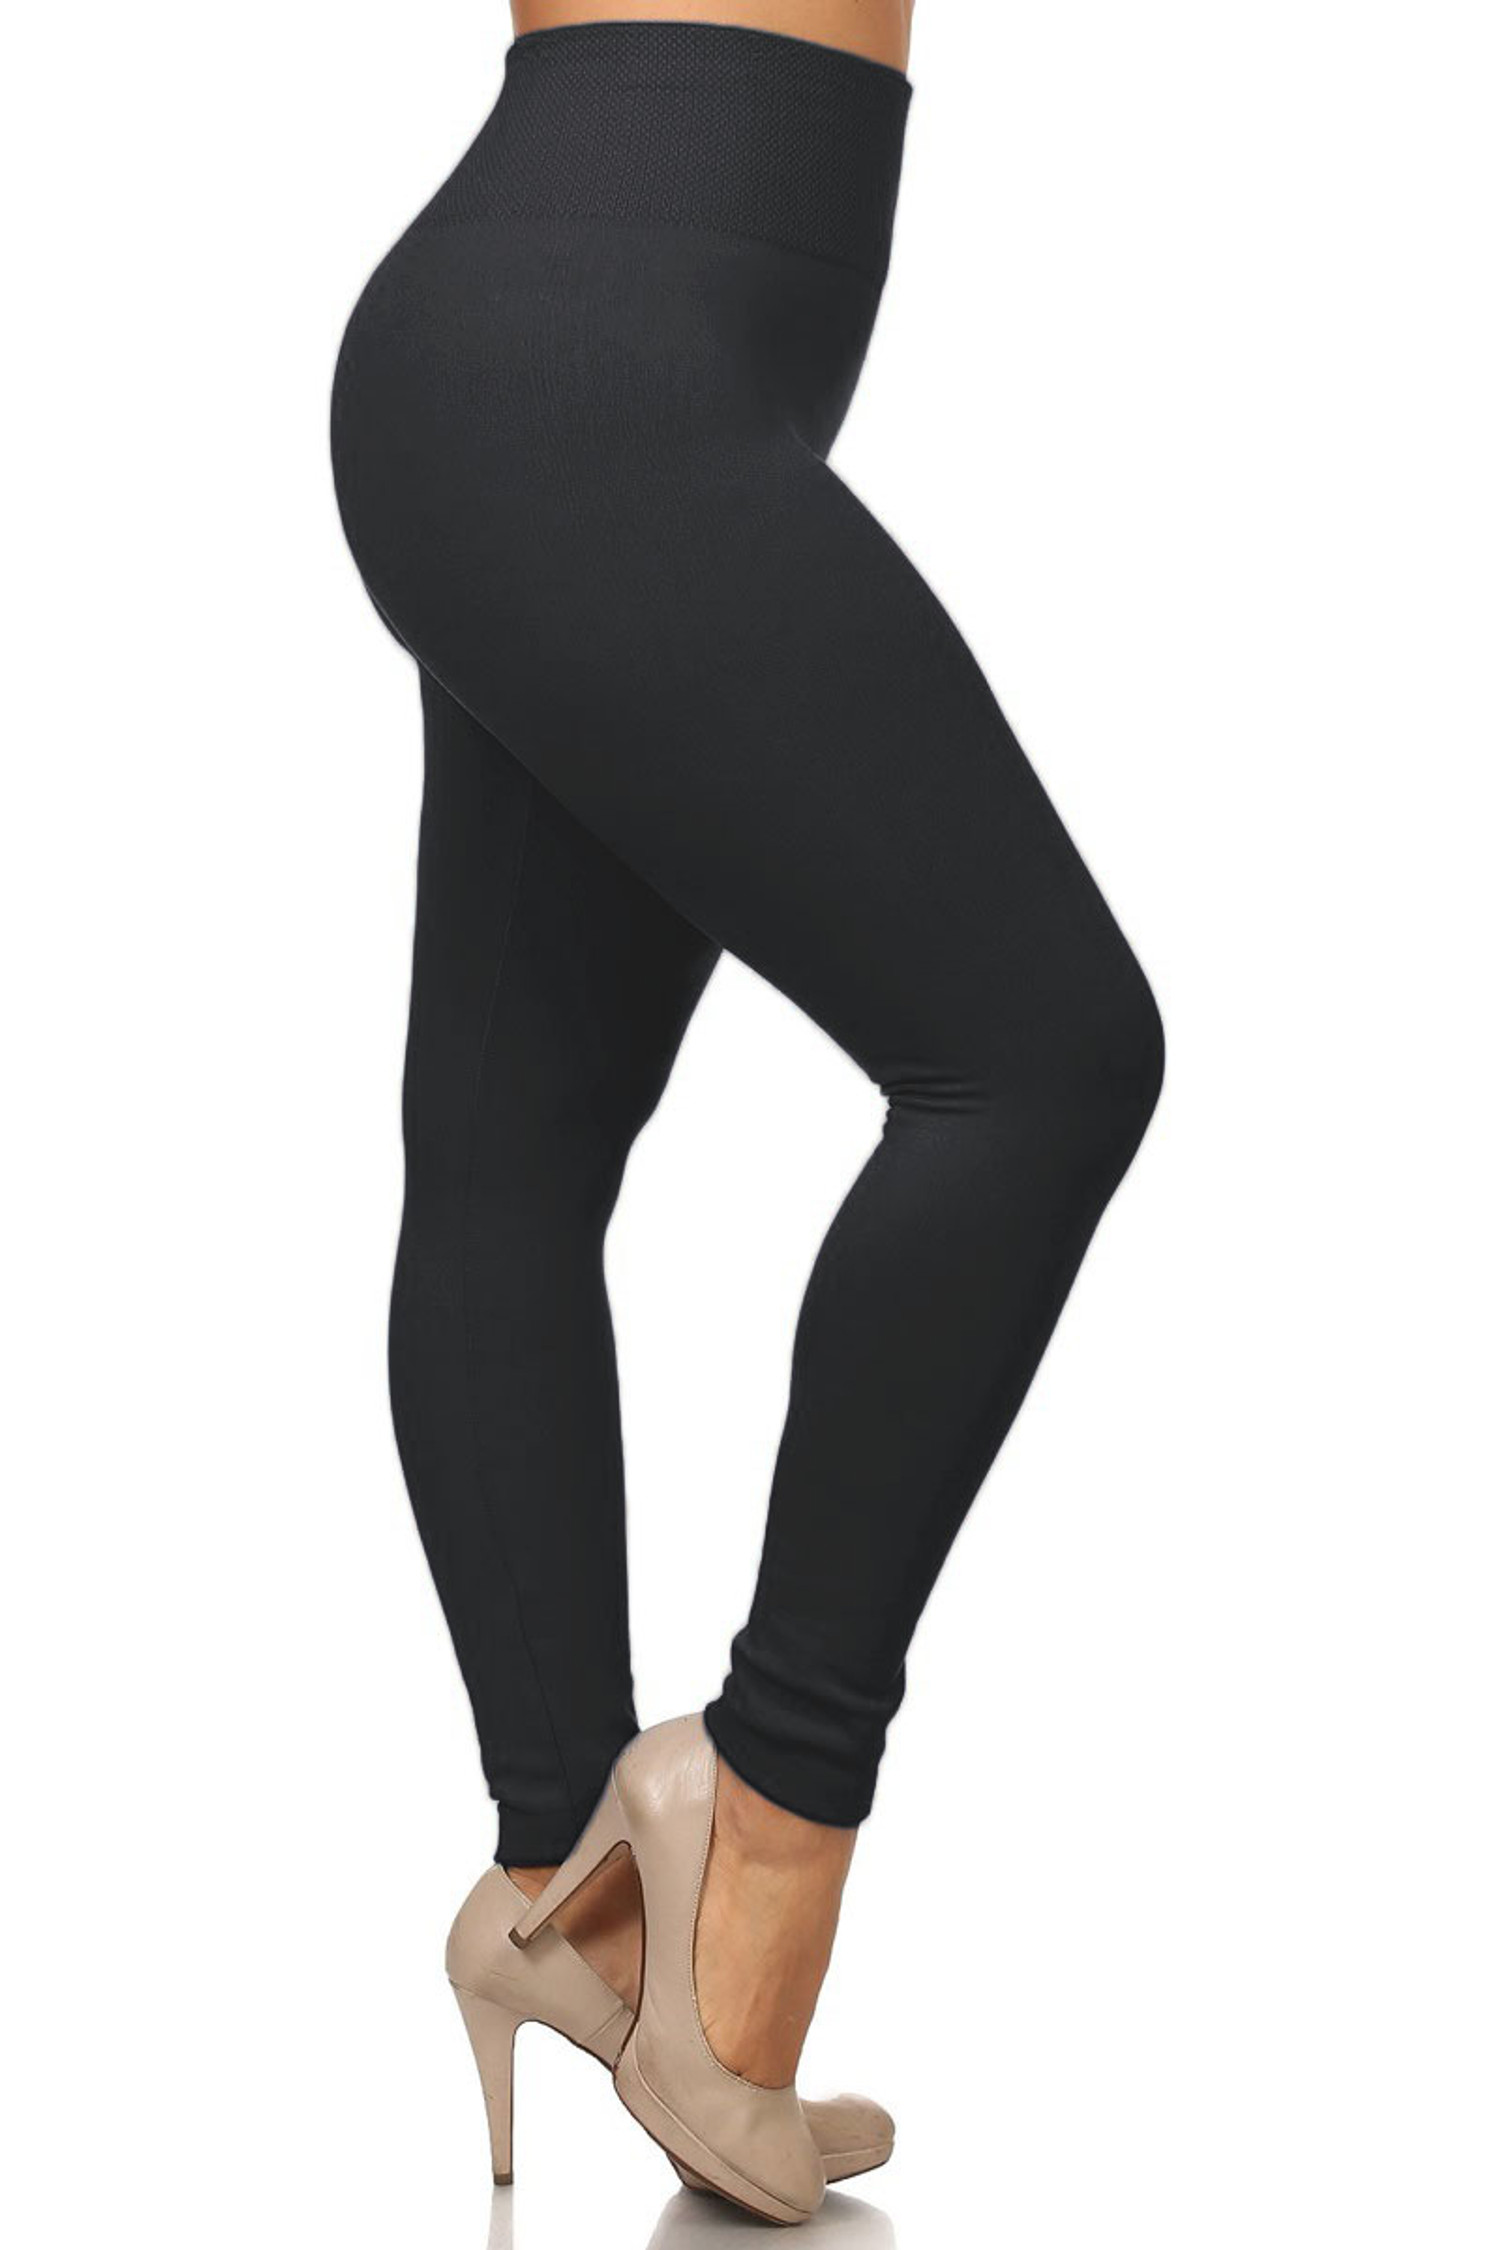 High Waist Thick Fleece Lined Plus Size Leggings